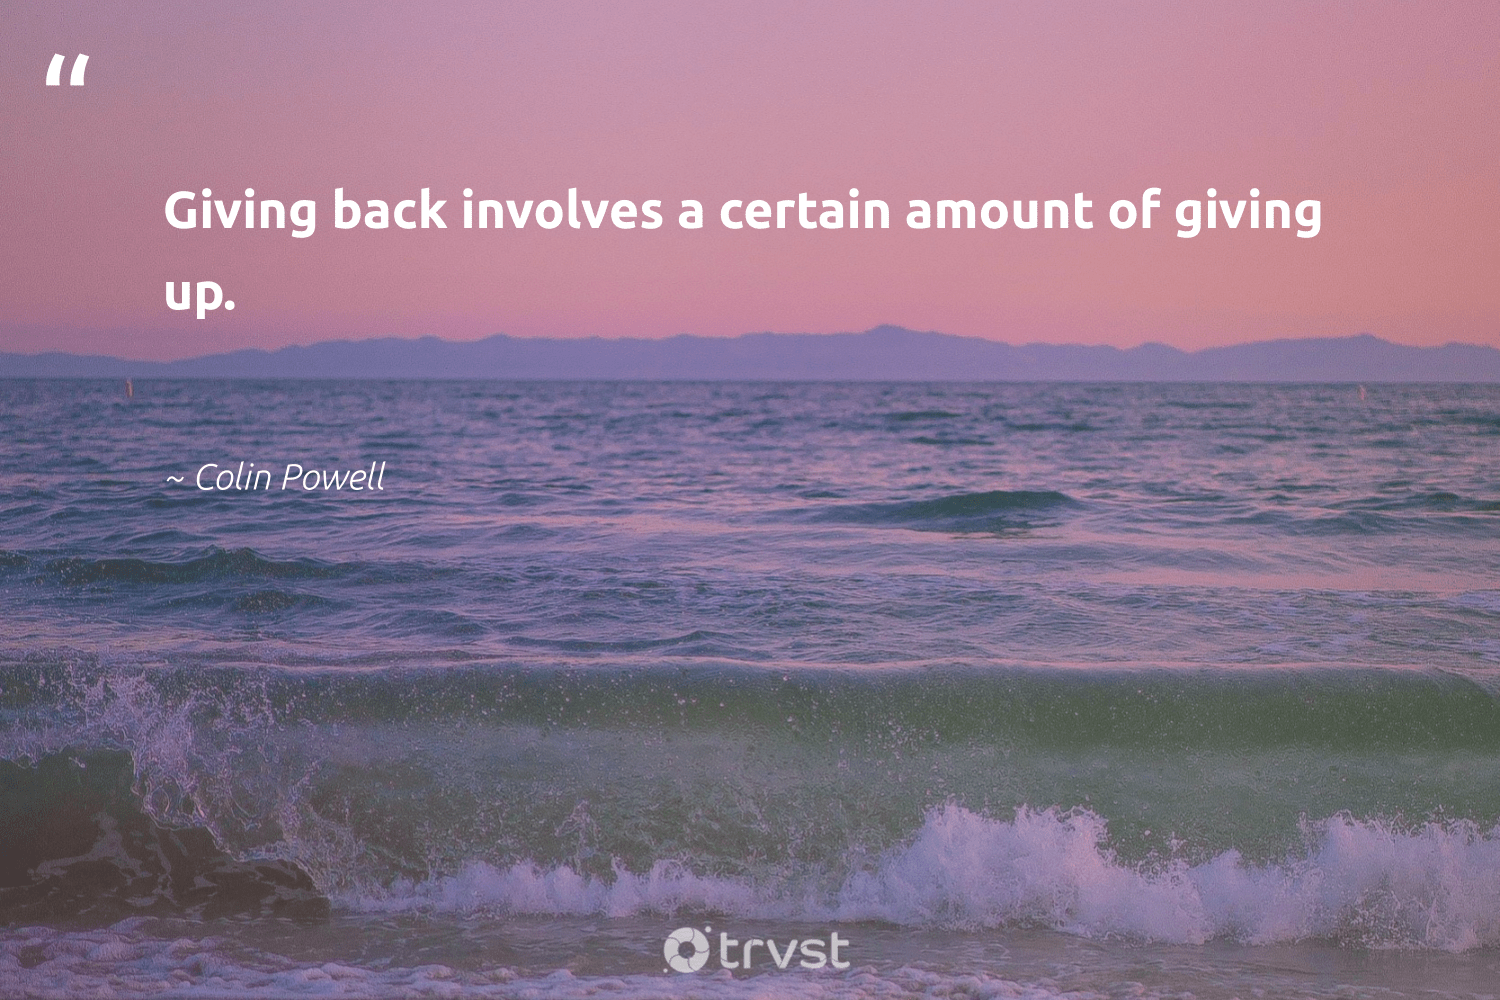 """""""Giving back involves a certain amount of giving up.""""  - Colin Powell #trvst #quotes #givingback #giveback #socialgood #changemakers #togetherwecan #changetheworld #dogood #giveforthefuture #itscooltobekind #ecoconscious"""